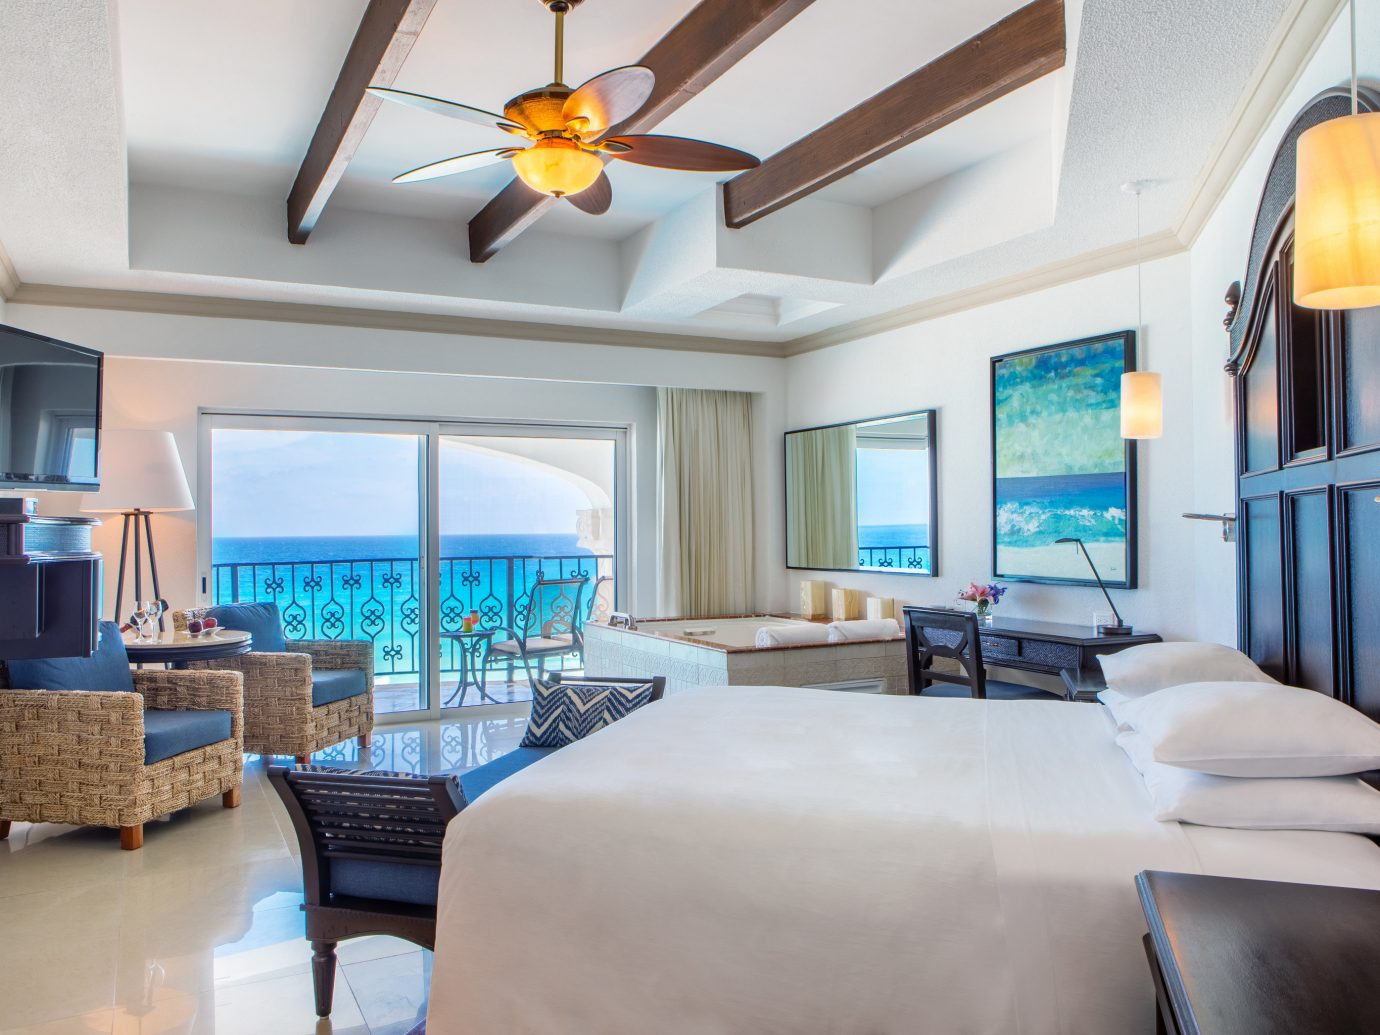 Hotels indoor sofa room wall Living window floor ceiling property living room interior design real estate furniture penthouse apartment estate condominium apartment Suite interior designer Villa Bedroom area Modern decorated